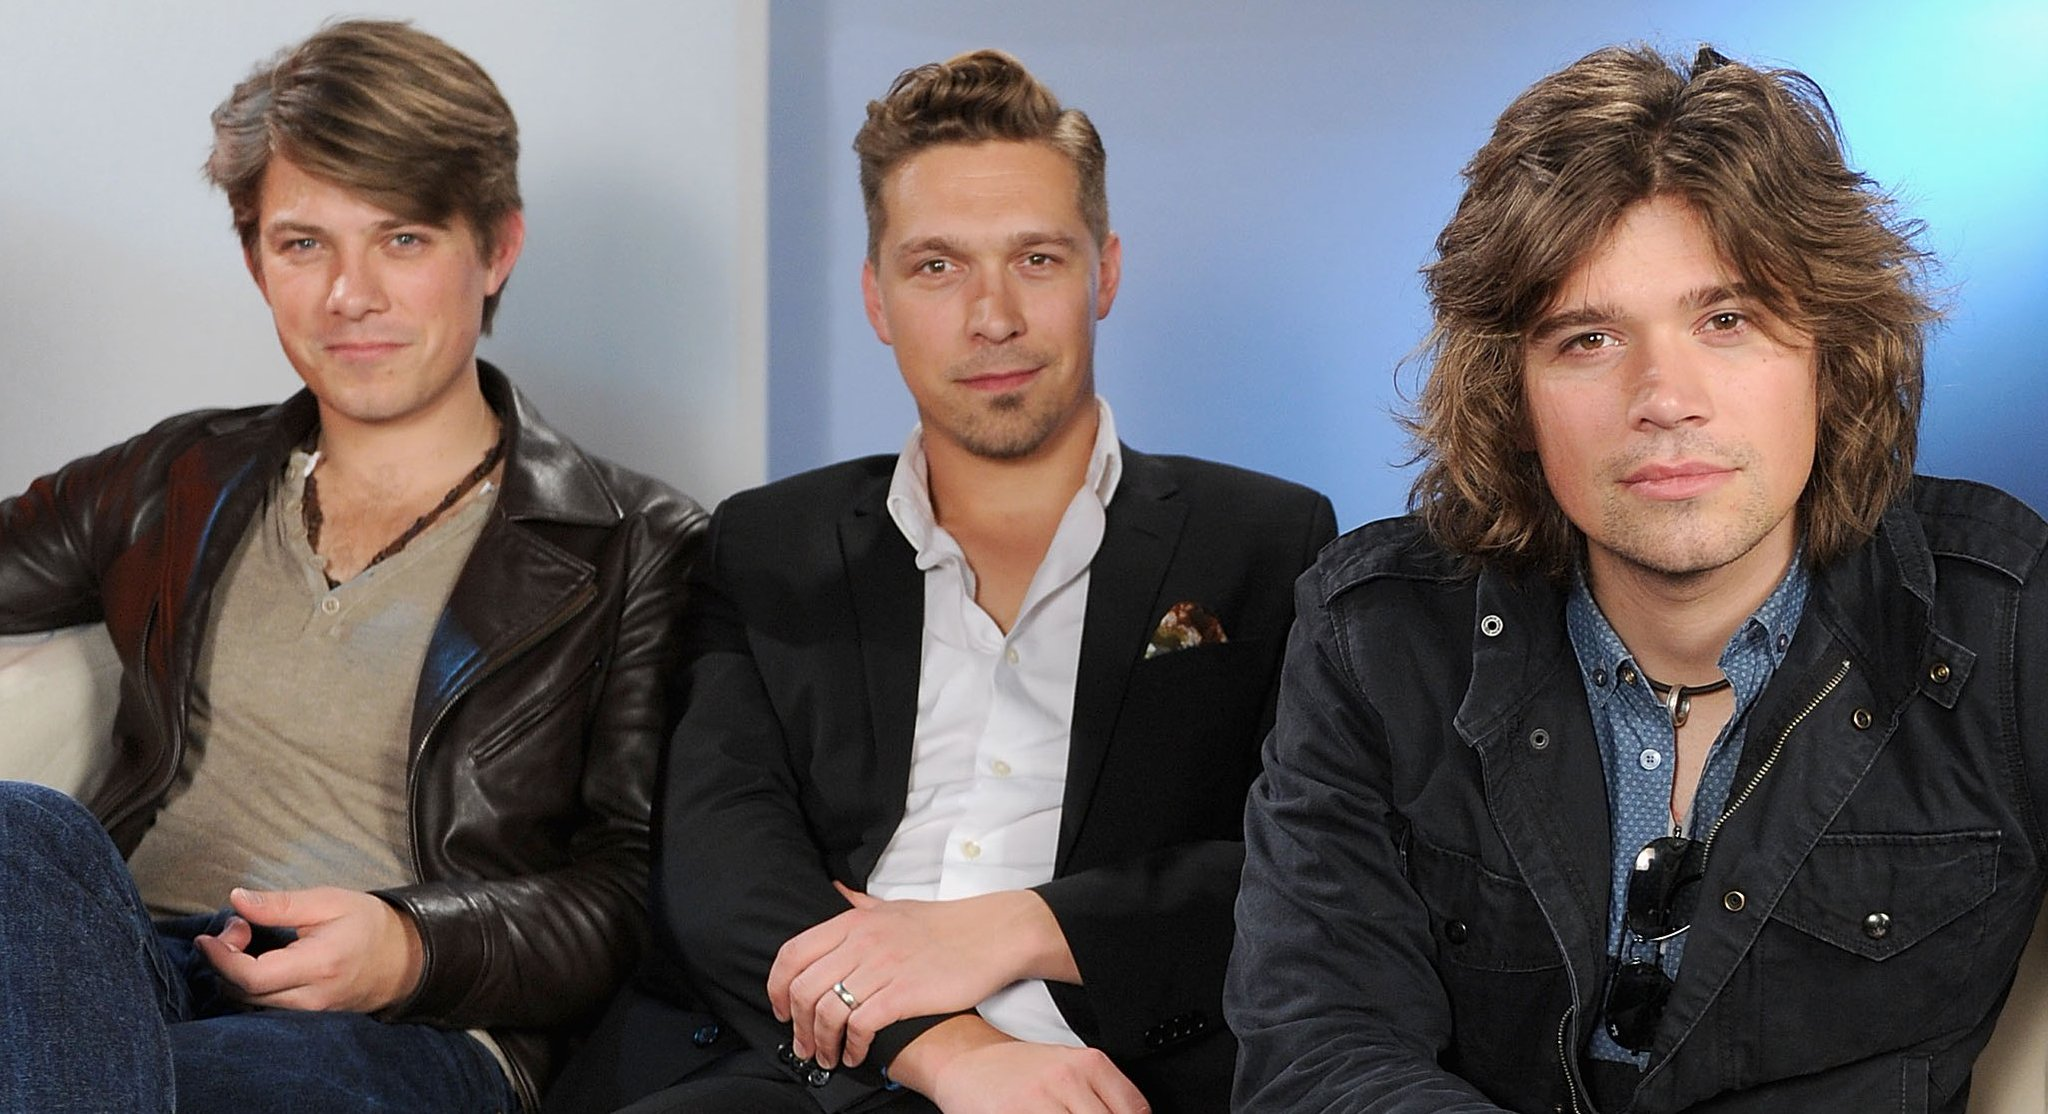 .@hansonmusic on 20 years of 'Middle of Nowhere' and why they'll never break up https://t.co/xkujHWVRSP https://t.co/nS4NFpOCjD